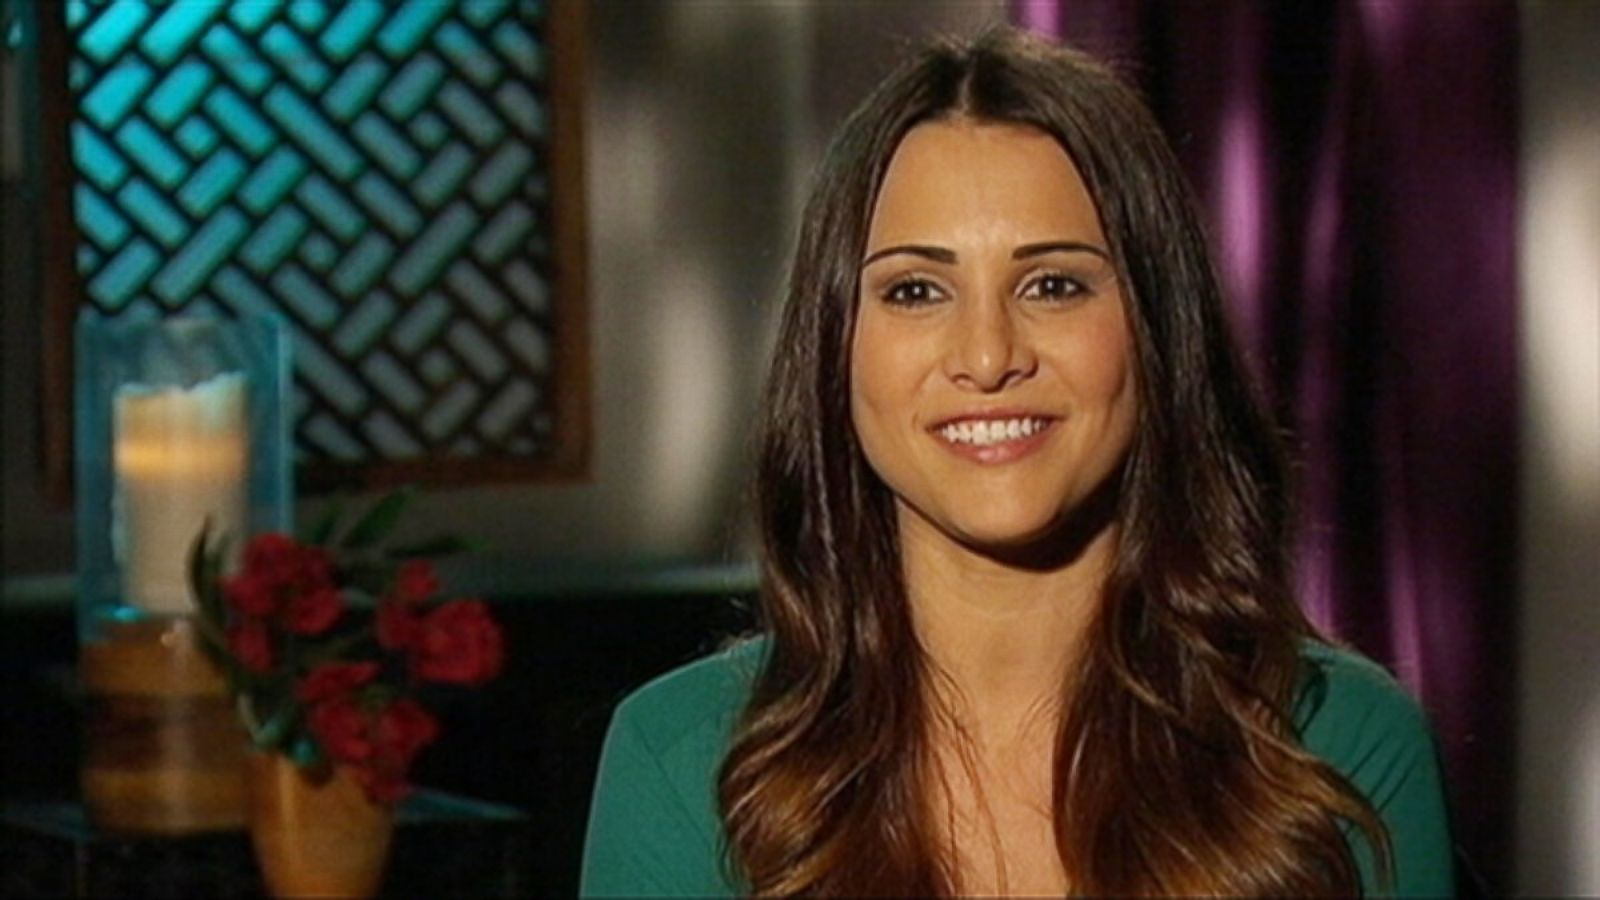 Meet The New Bachelorette Andi Dorfman Abc News Andi dorfman is the assistant district attorney in the murder trial of rapper lil phat. the bachelor finale comes with bachelorette buzz